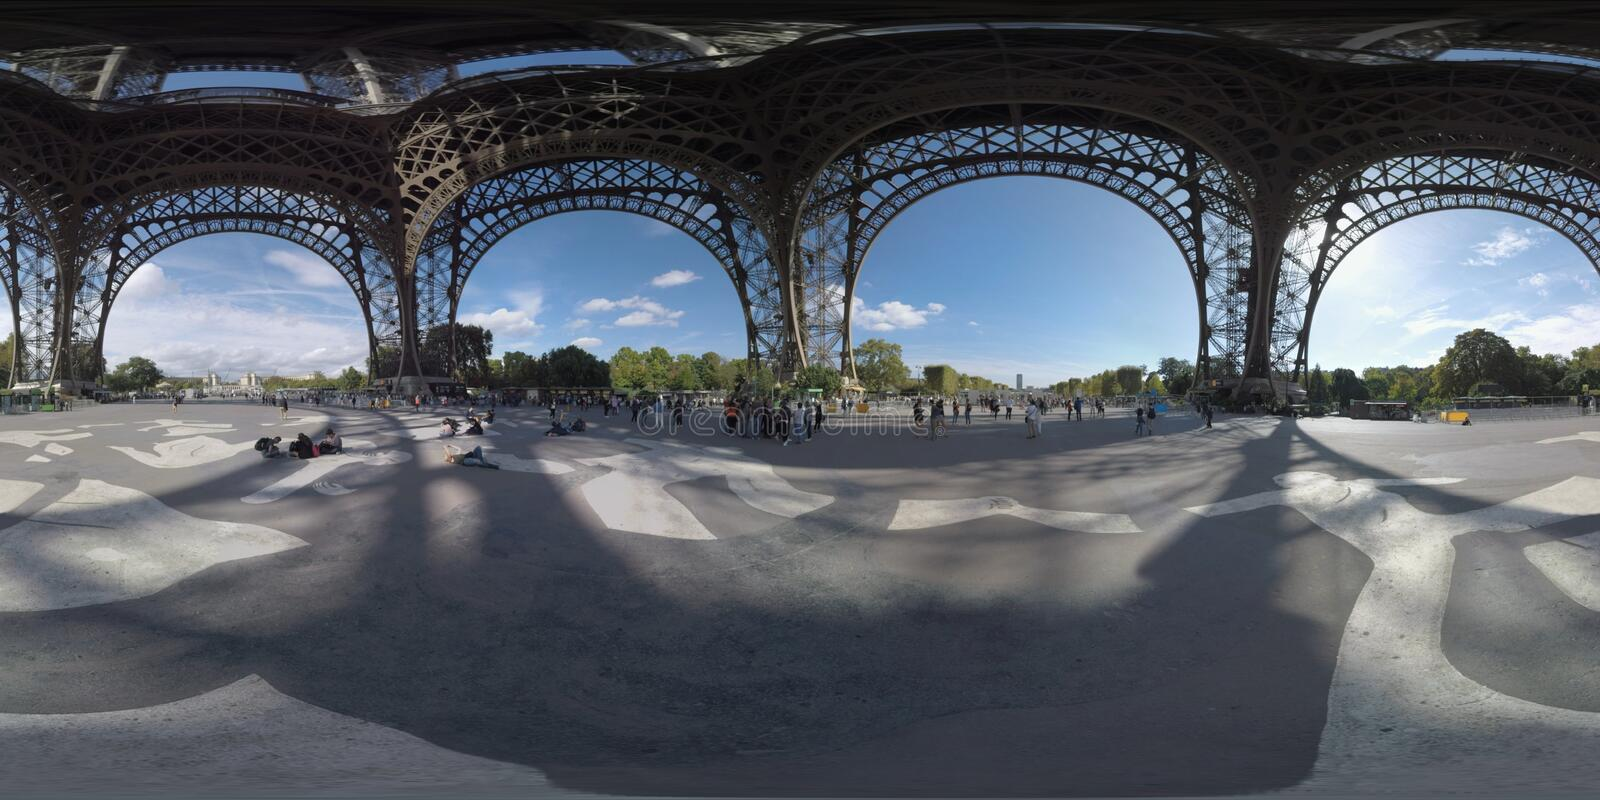 360 VR View from underneath the Eiffel Tower in Paris, France royalty free stock photography